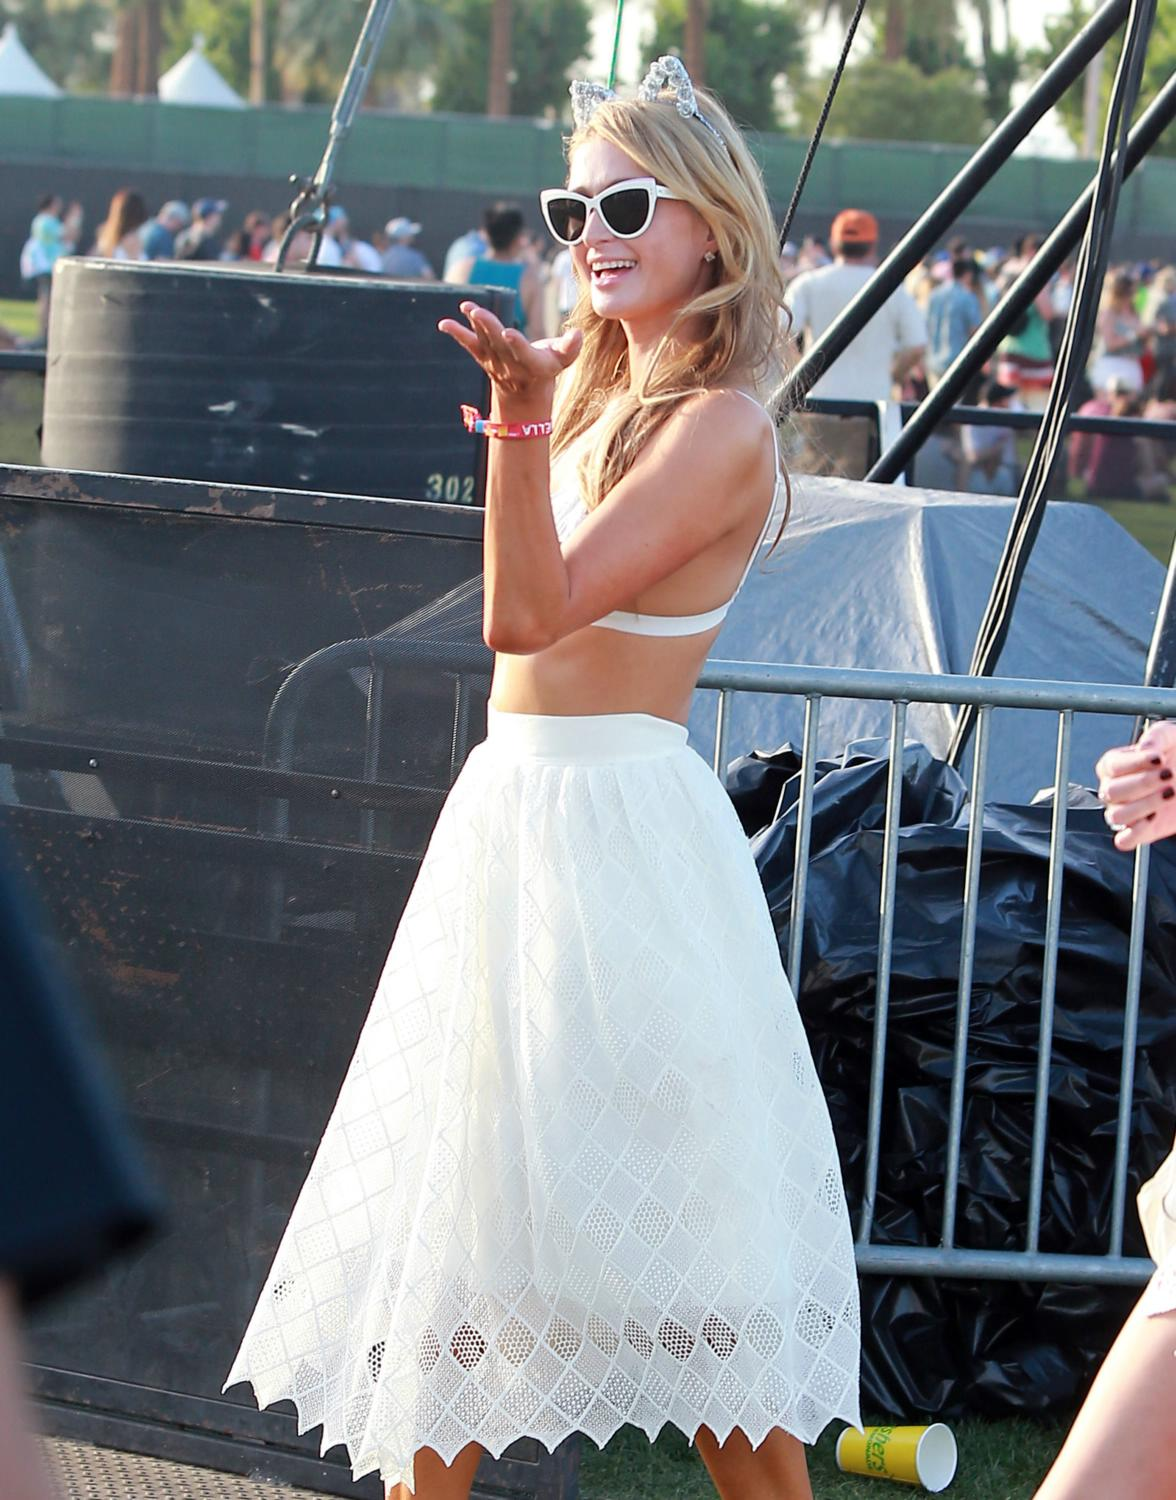 Paris Hilton and Nicky Hilton at Coachella Valley Music and Arts Festival-1